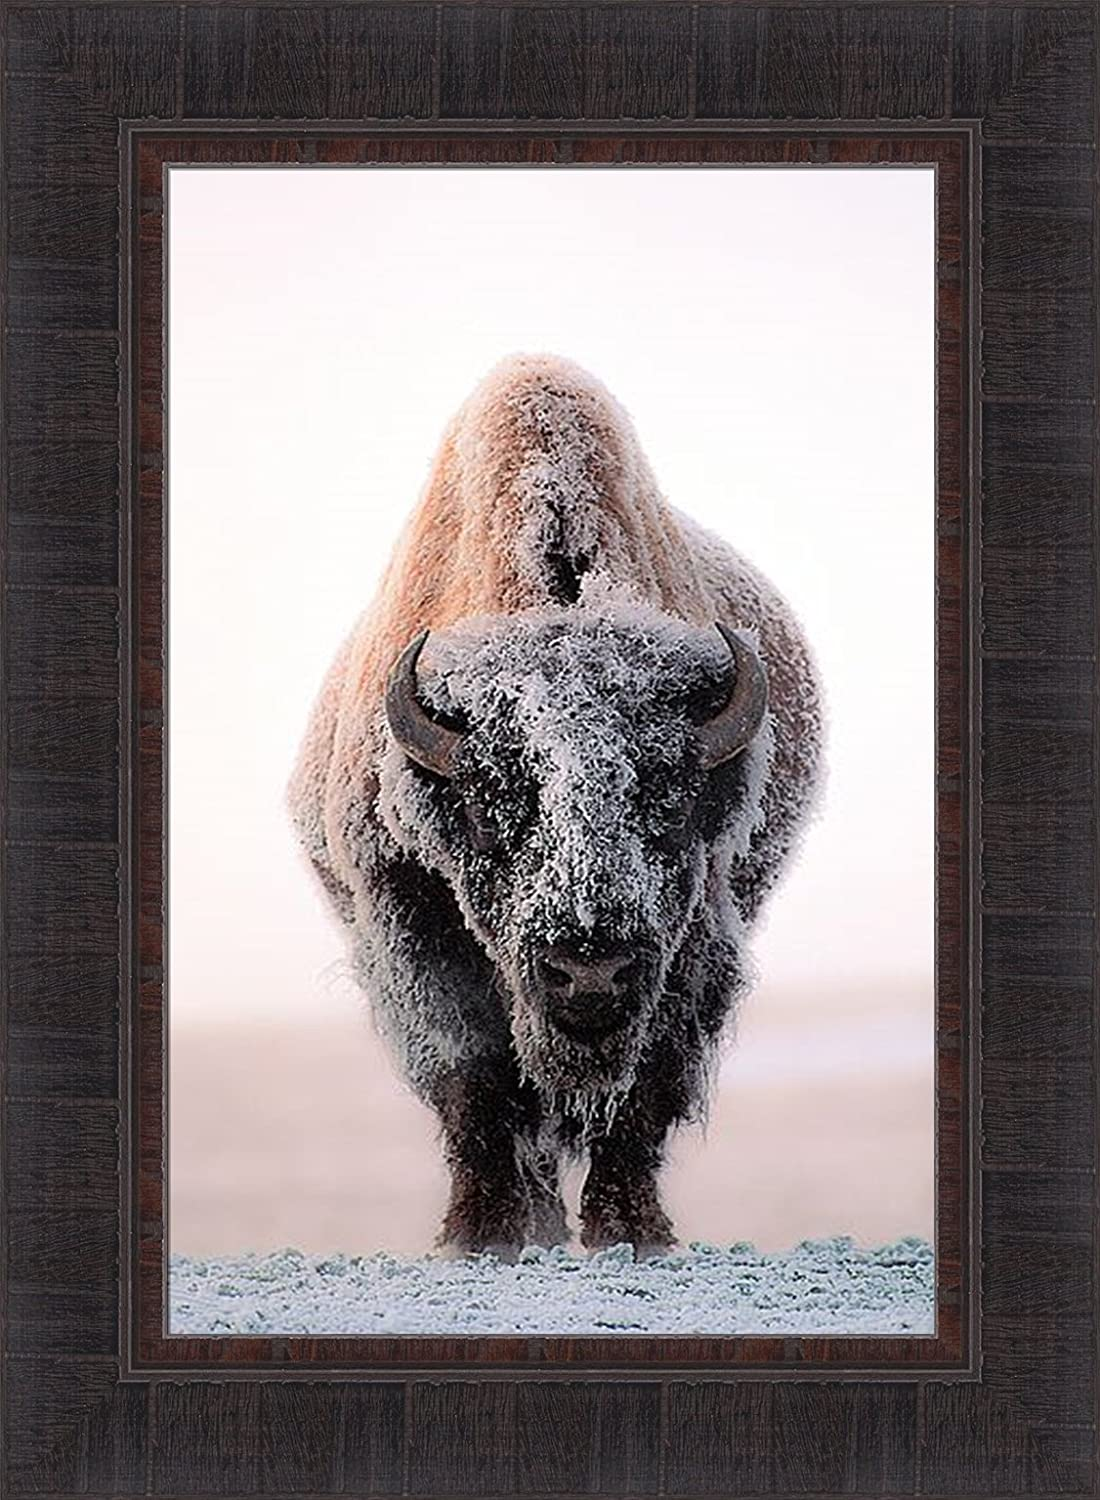 Home Cabin Décor Ghost of The Plains by Gary Crandall 17x23 Bison American Buffalo Winter Snow Frost Photograph Framed Art Print Picture